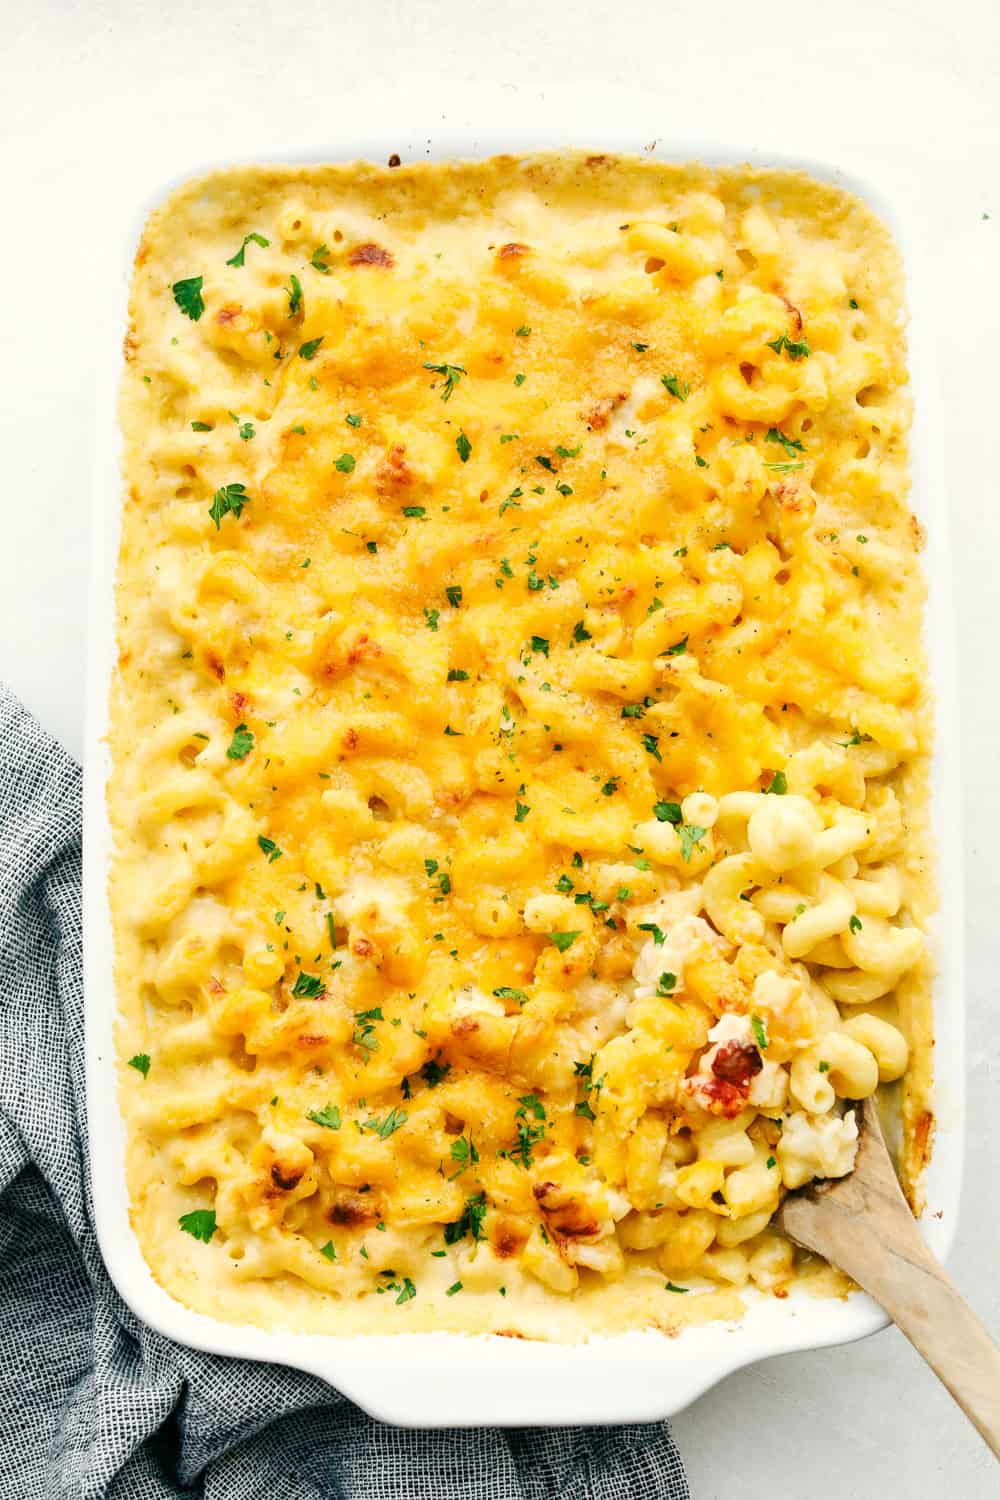 Baked lobster macaroni and cheese in a white dish.